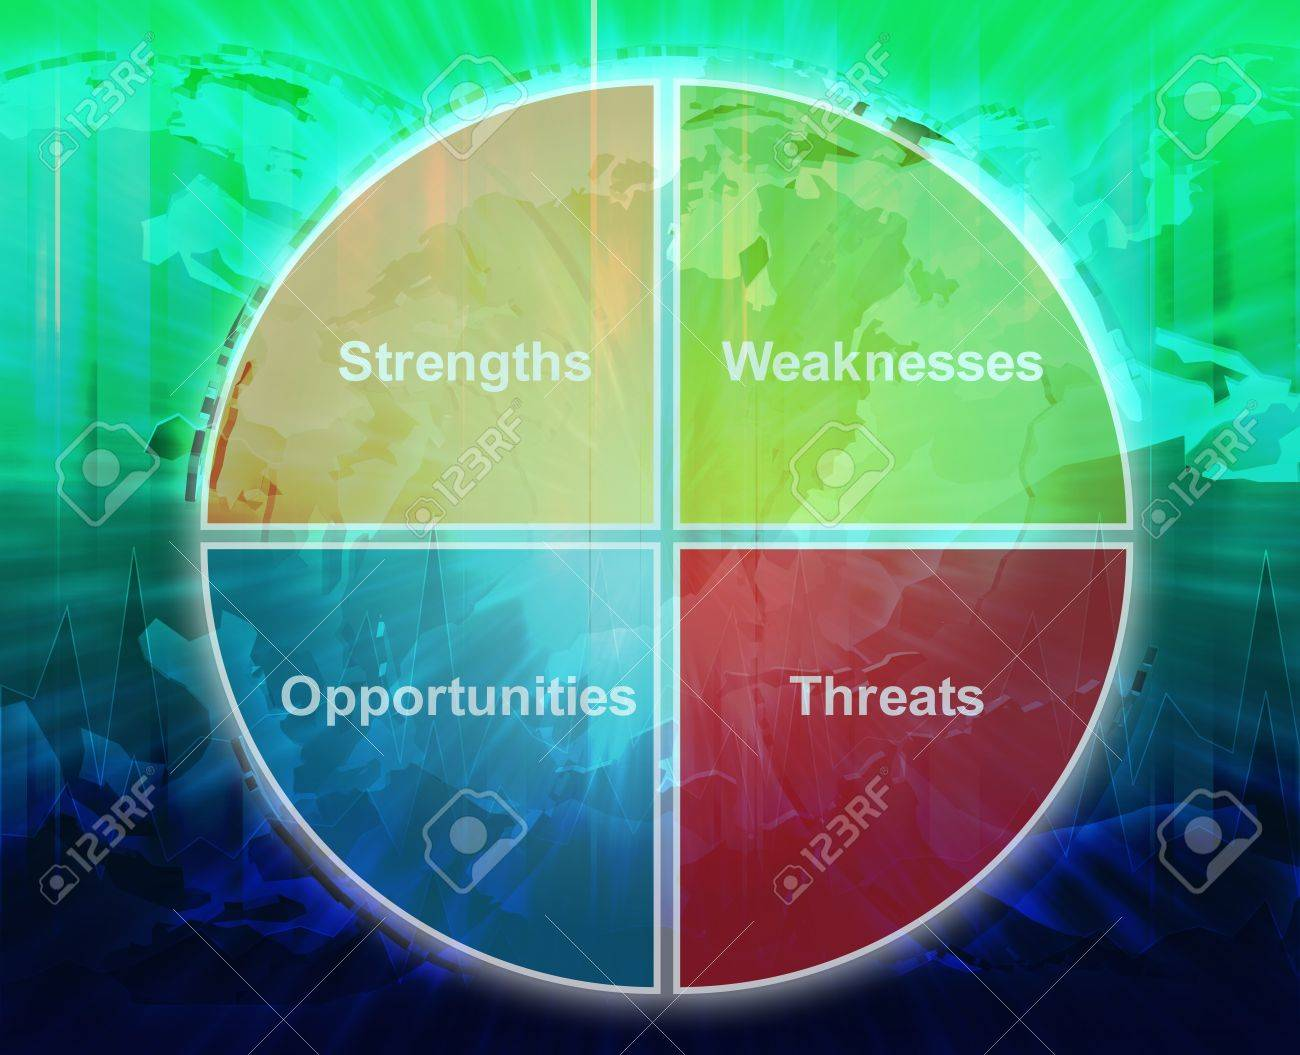 Global SWOT analysis business strategy management process concept diagram illustration Stock Photo - 9914846